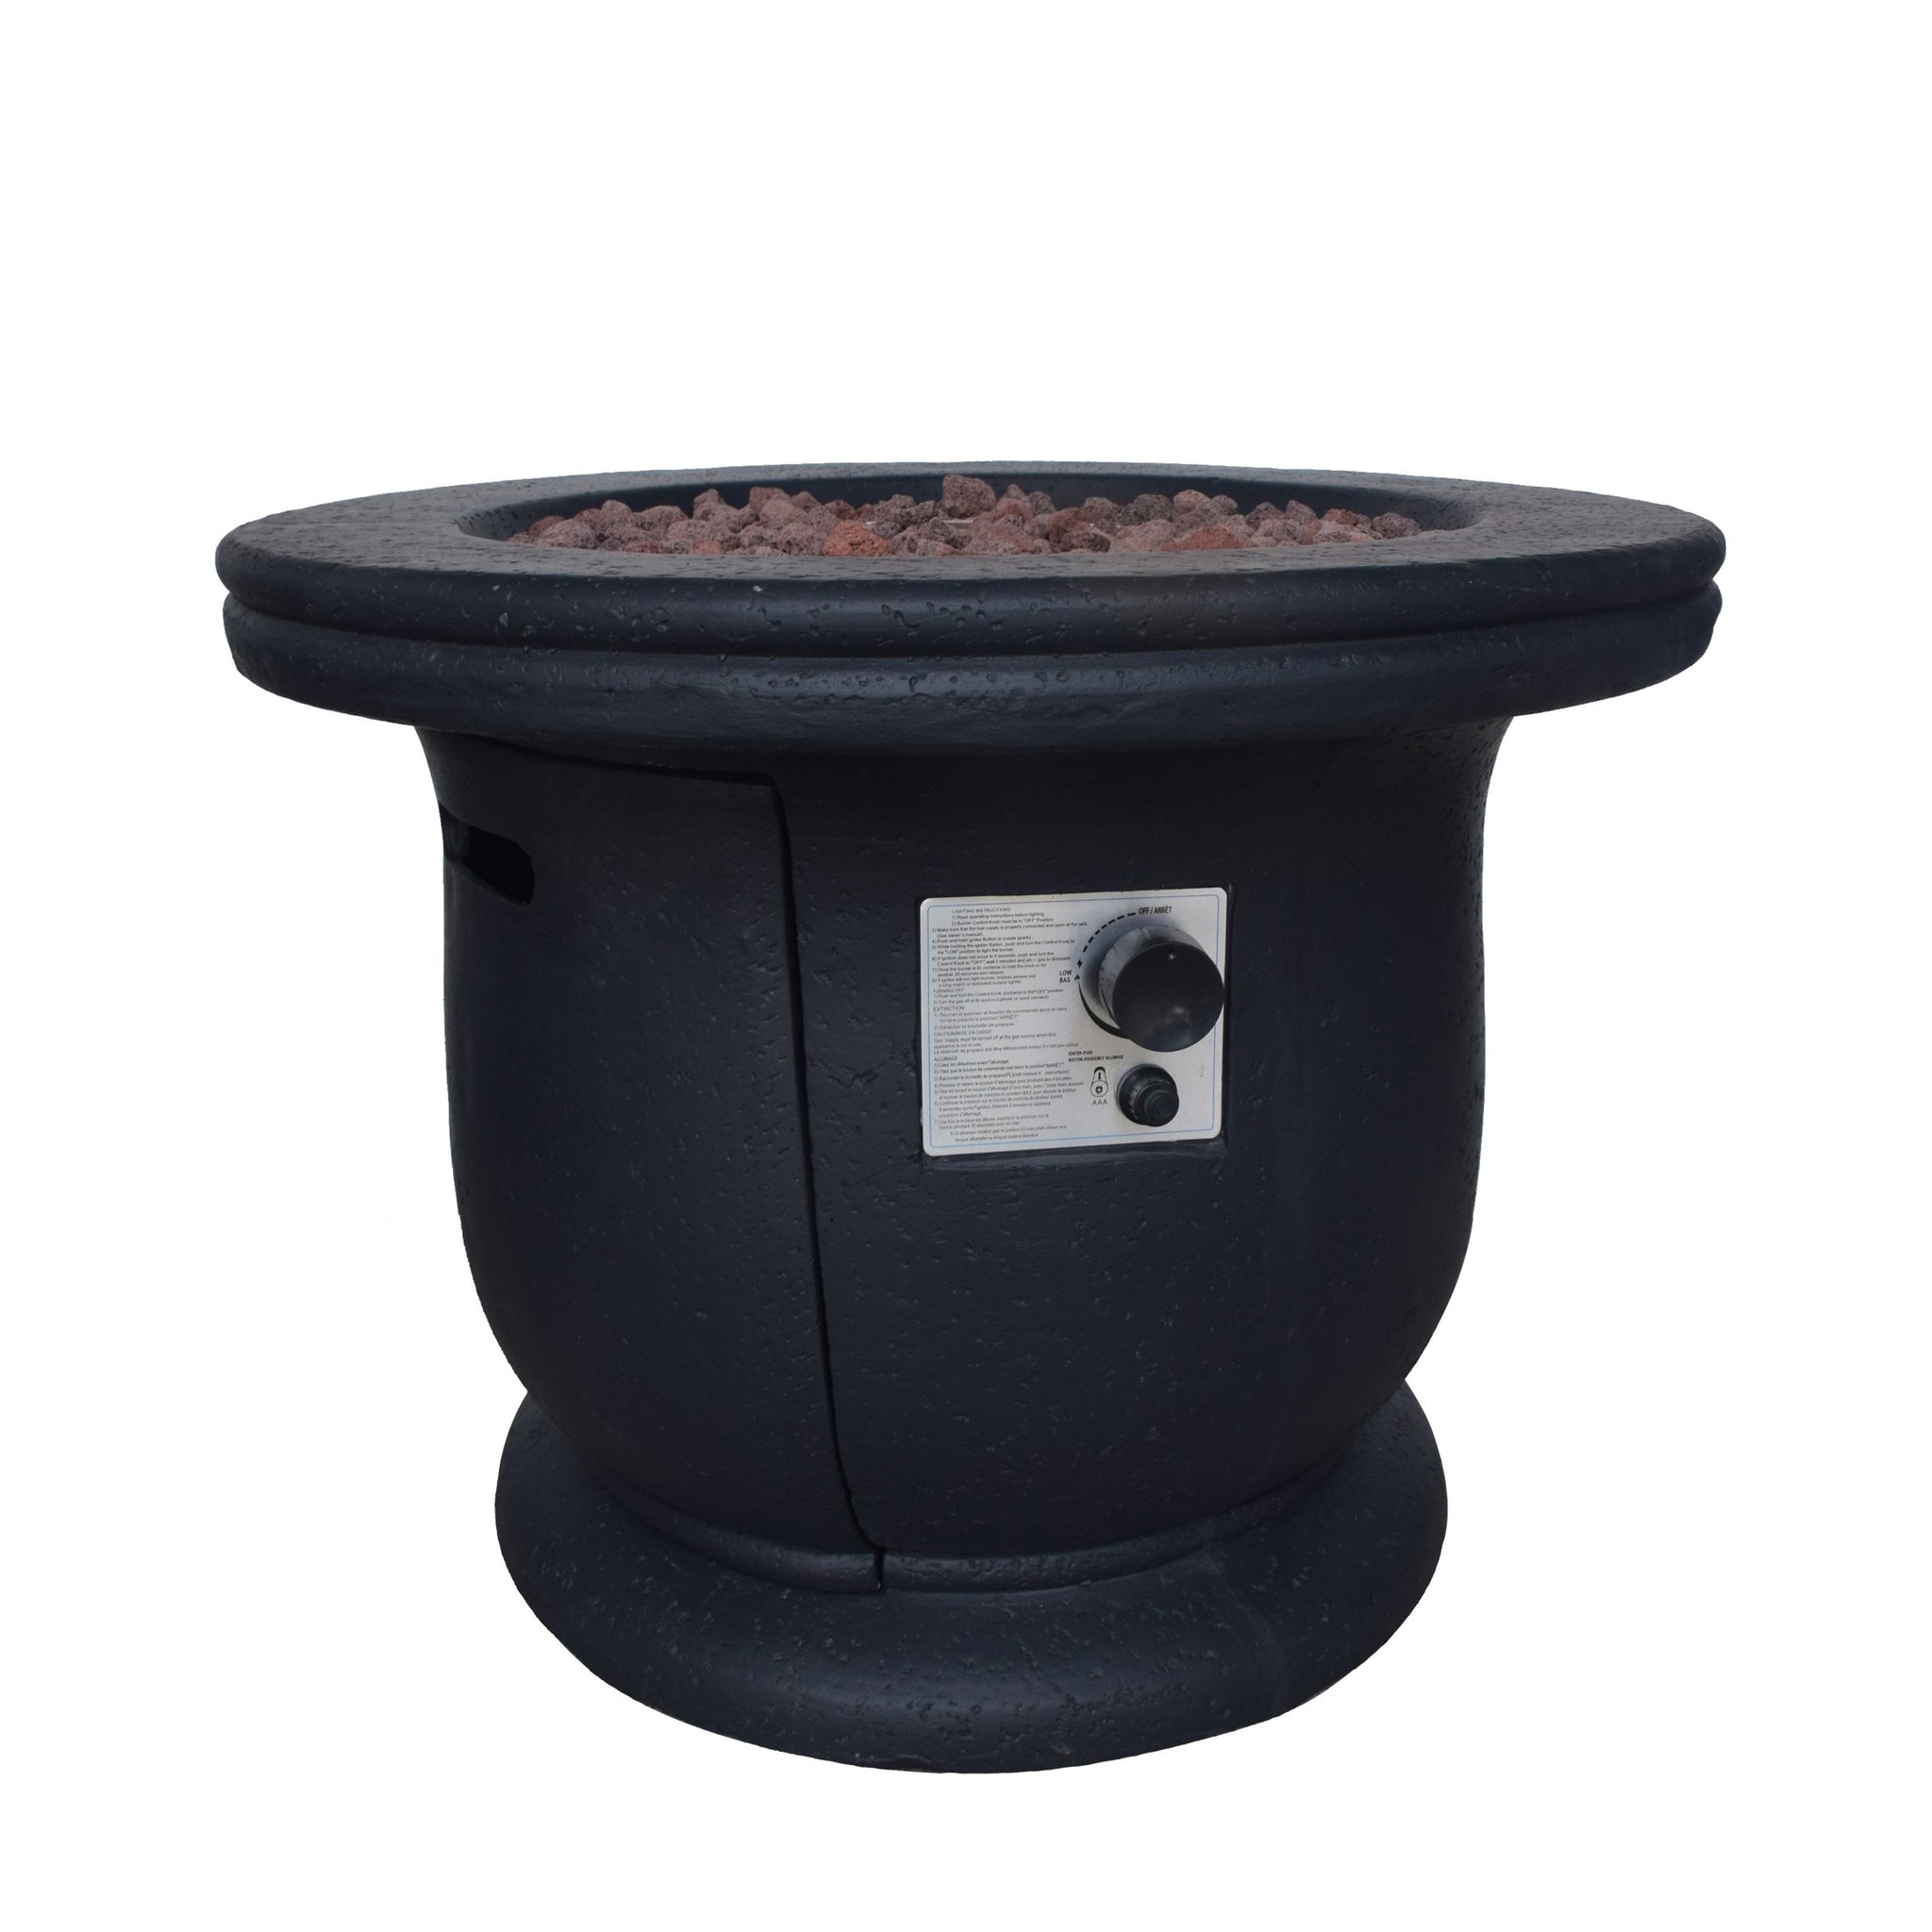 "Caplan Outdoor Concrete 32"" Gas Burning Fire Pit"